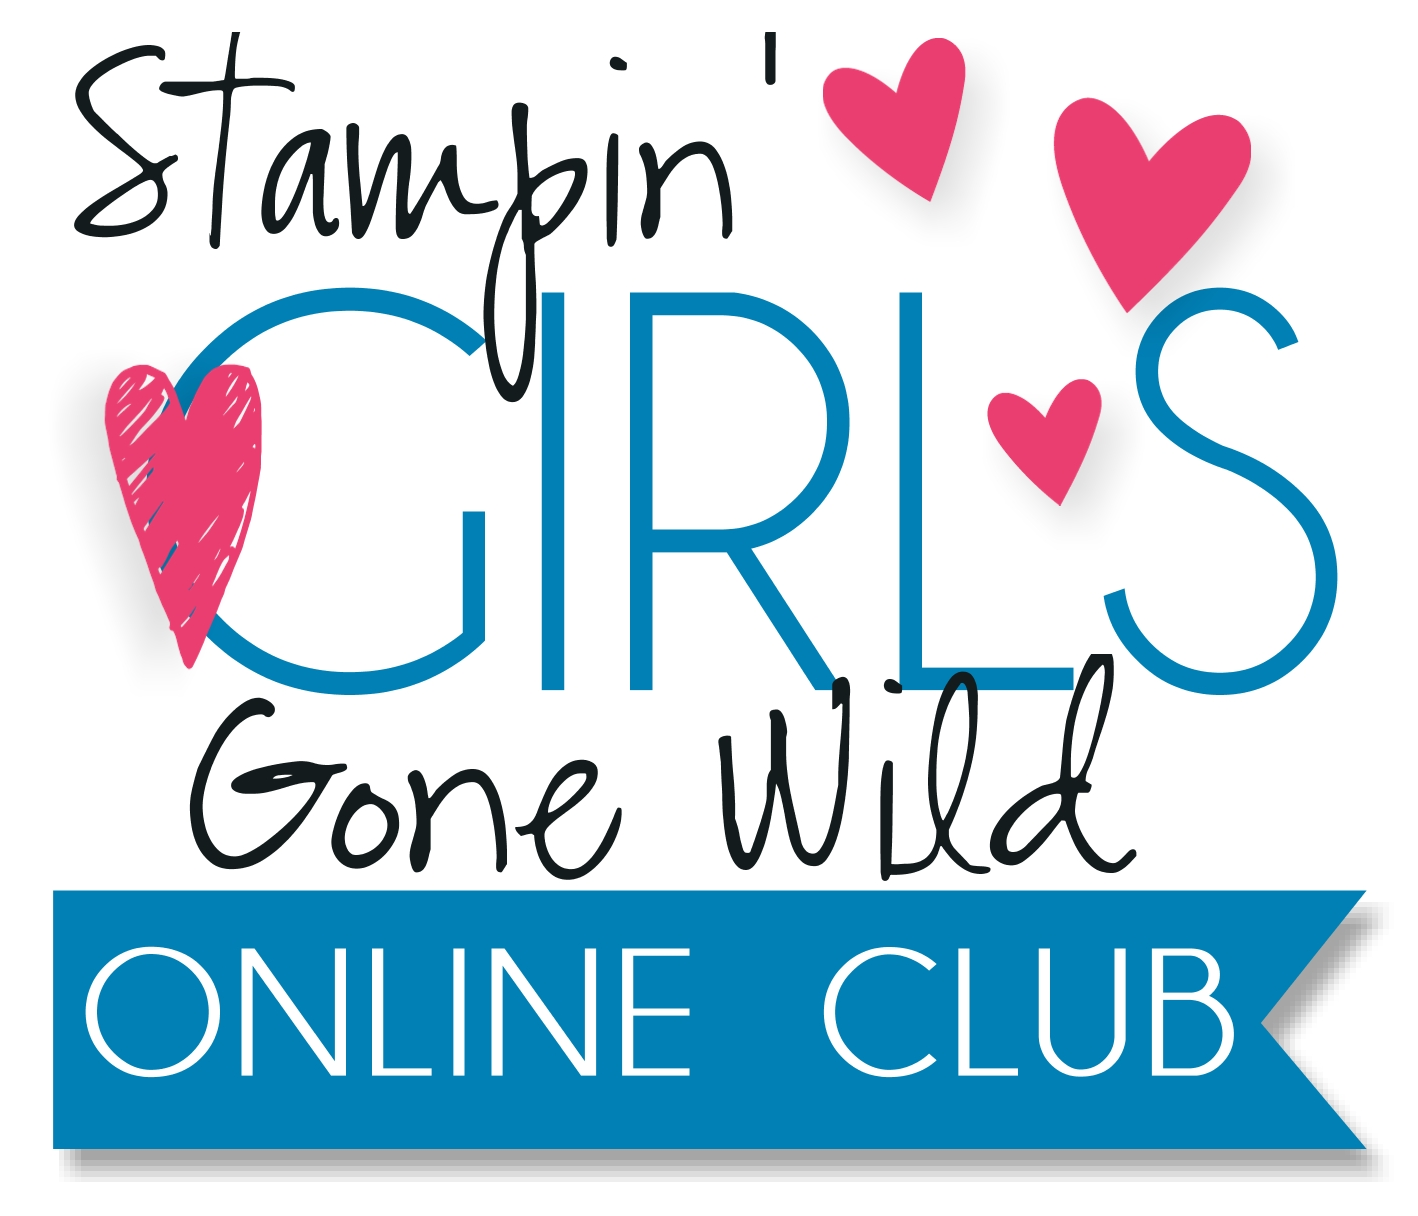 Stampin' Girls Gone Wild Online Club